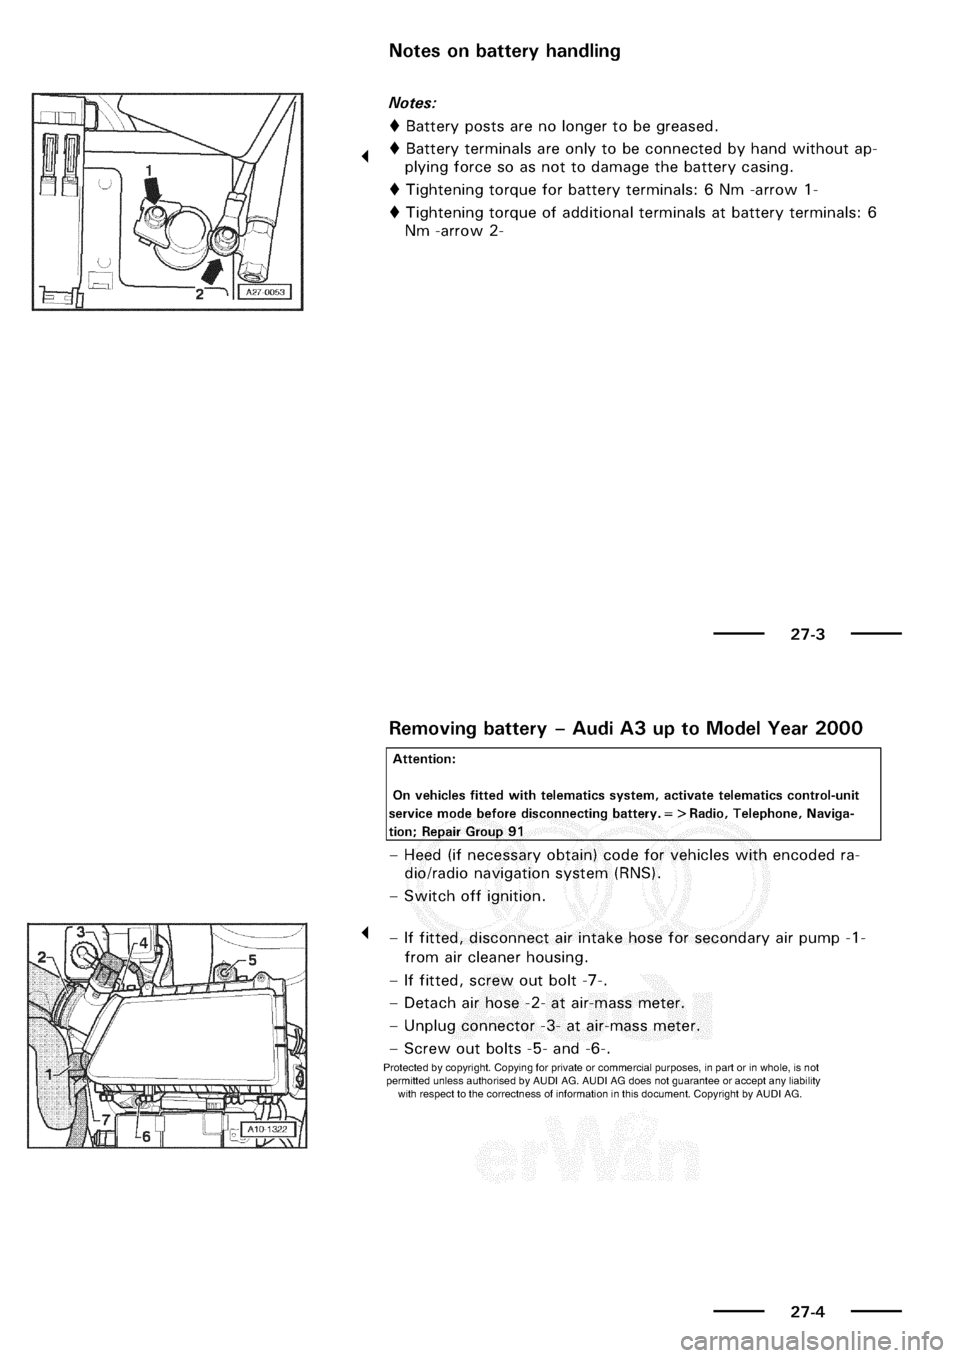 Audi A3 2001 8l 1 G Electrical System Workshop Manual